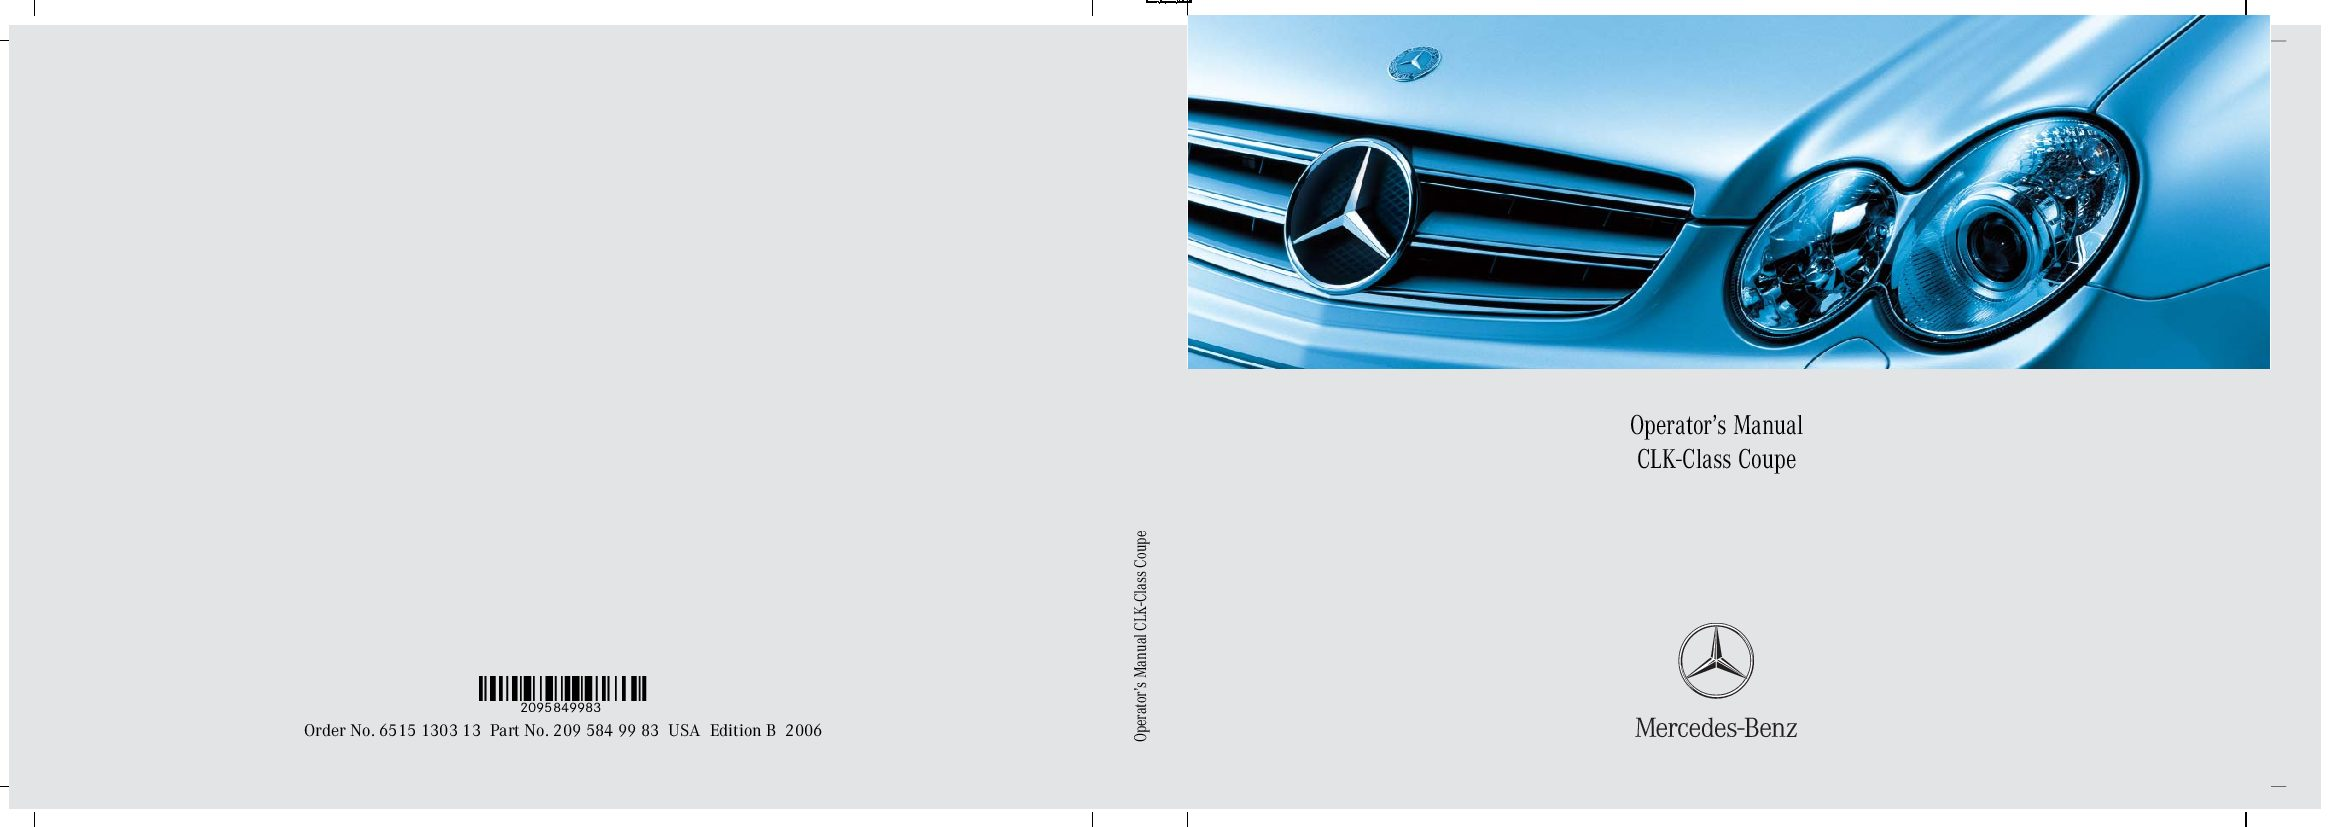 2006 mercedes benz clk class coupe owners manual just give me the rh justgivemethedamnmanual com 2011 Mercedes S-Class 2013 Mercedes S-Class